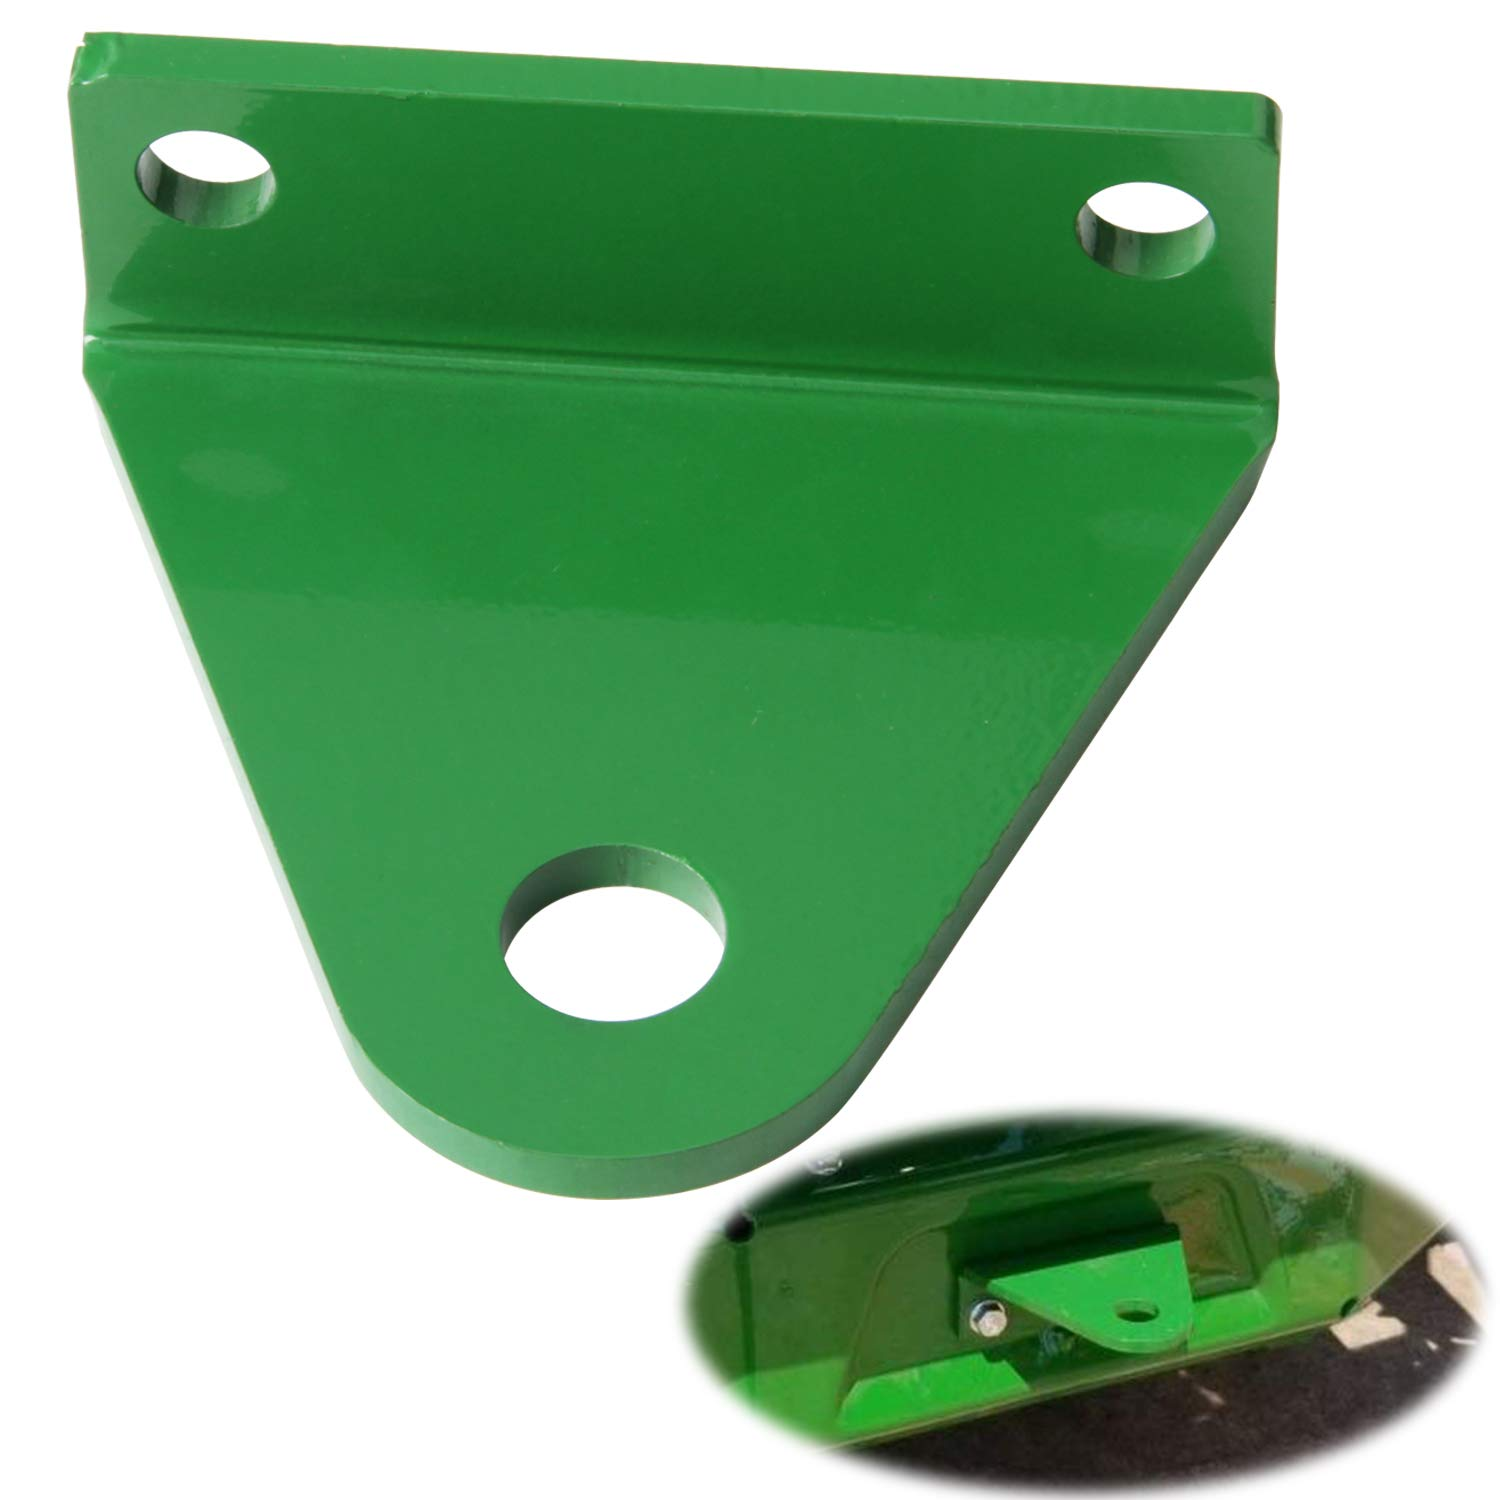 CNSY 3.3 Inch Mower Trailer Tow Hitch Fit for John Deere Ztrak Mower 800 & 900 Series by CNSY